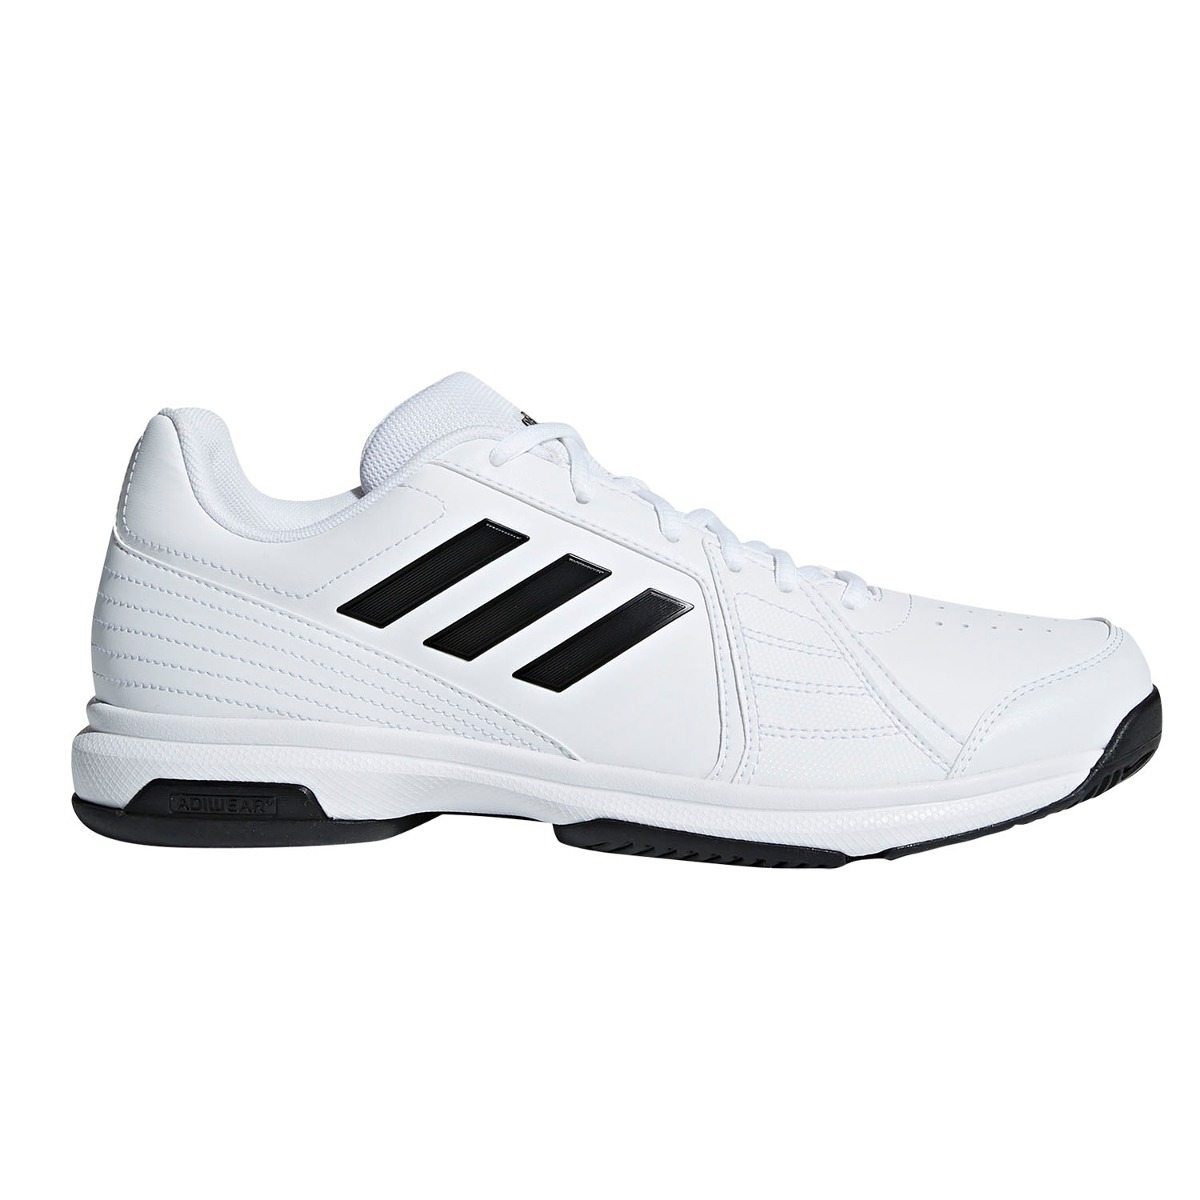 3fab7bb8609 zapatillas adidas approach-bb7664- adidas performance. Cargando zoom.